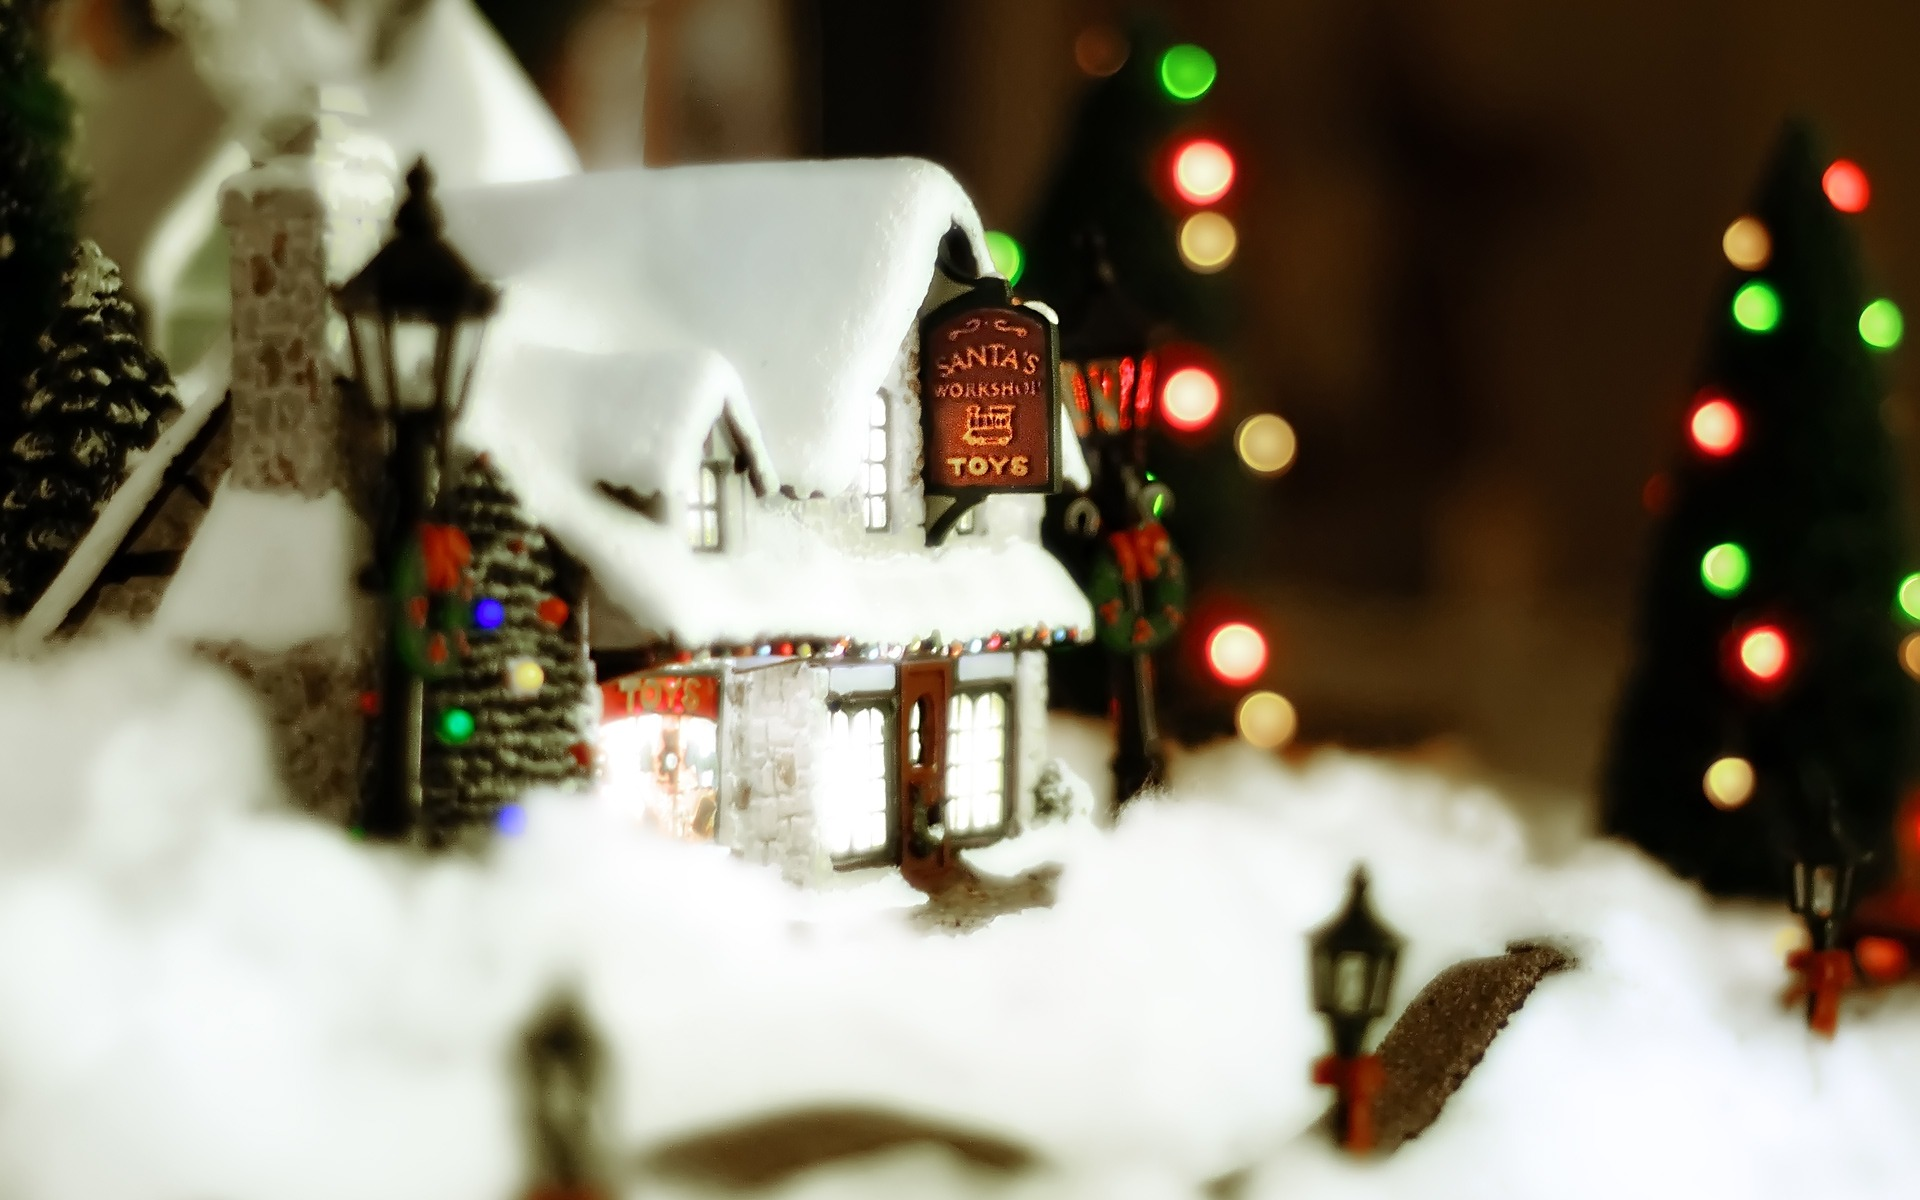 Christmas Holiday Wallpaper Hd 8